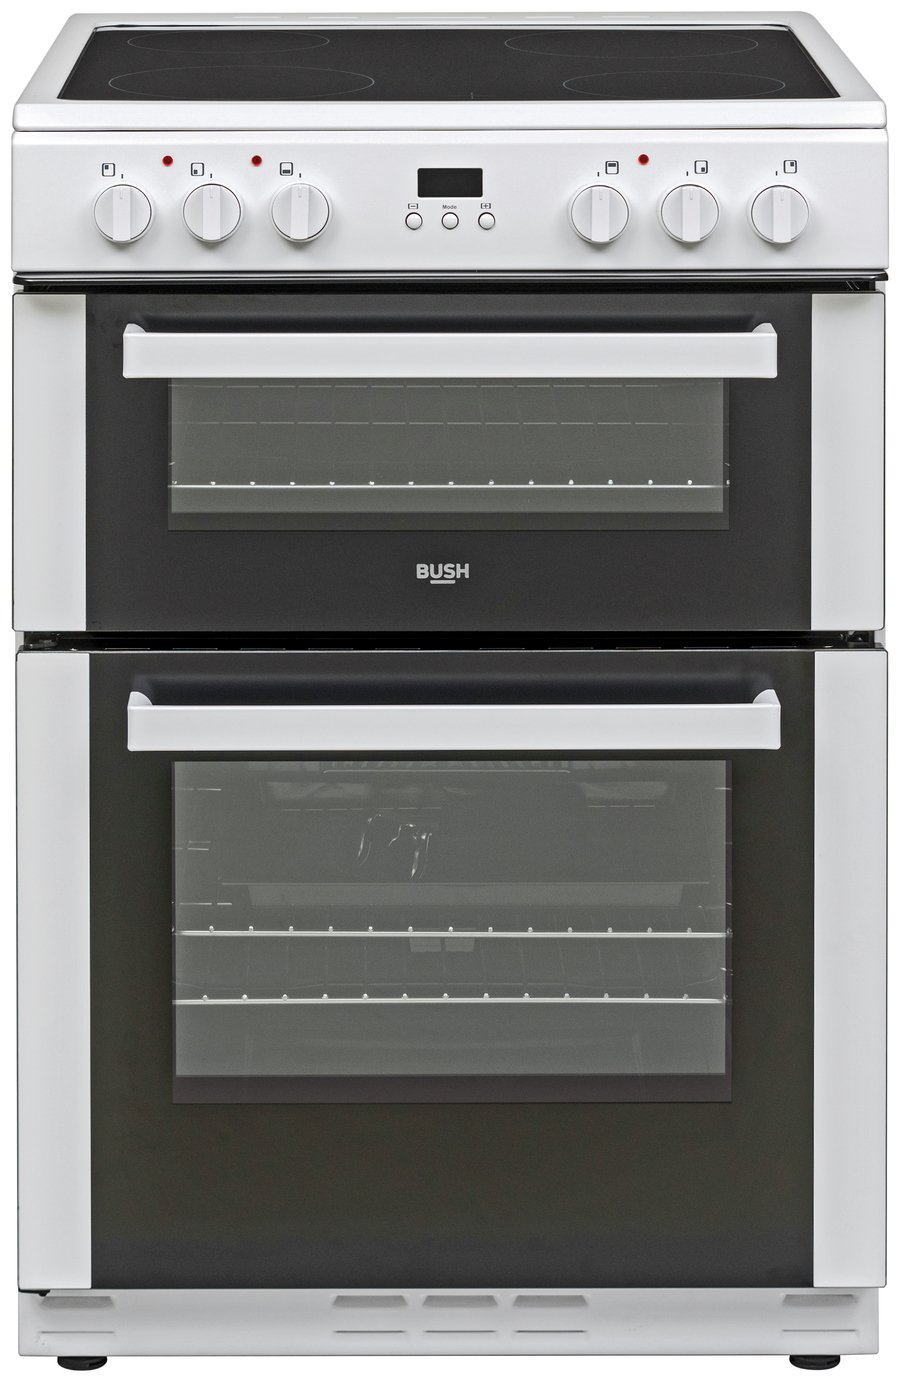 Image of Bush BDBL60ELW Double Electric Cooker - White